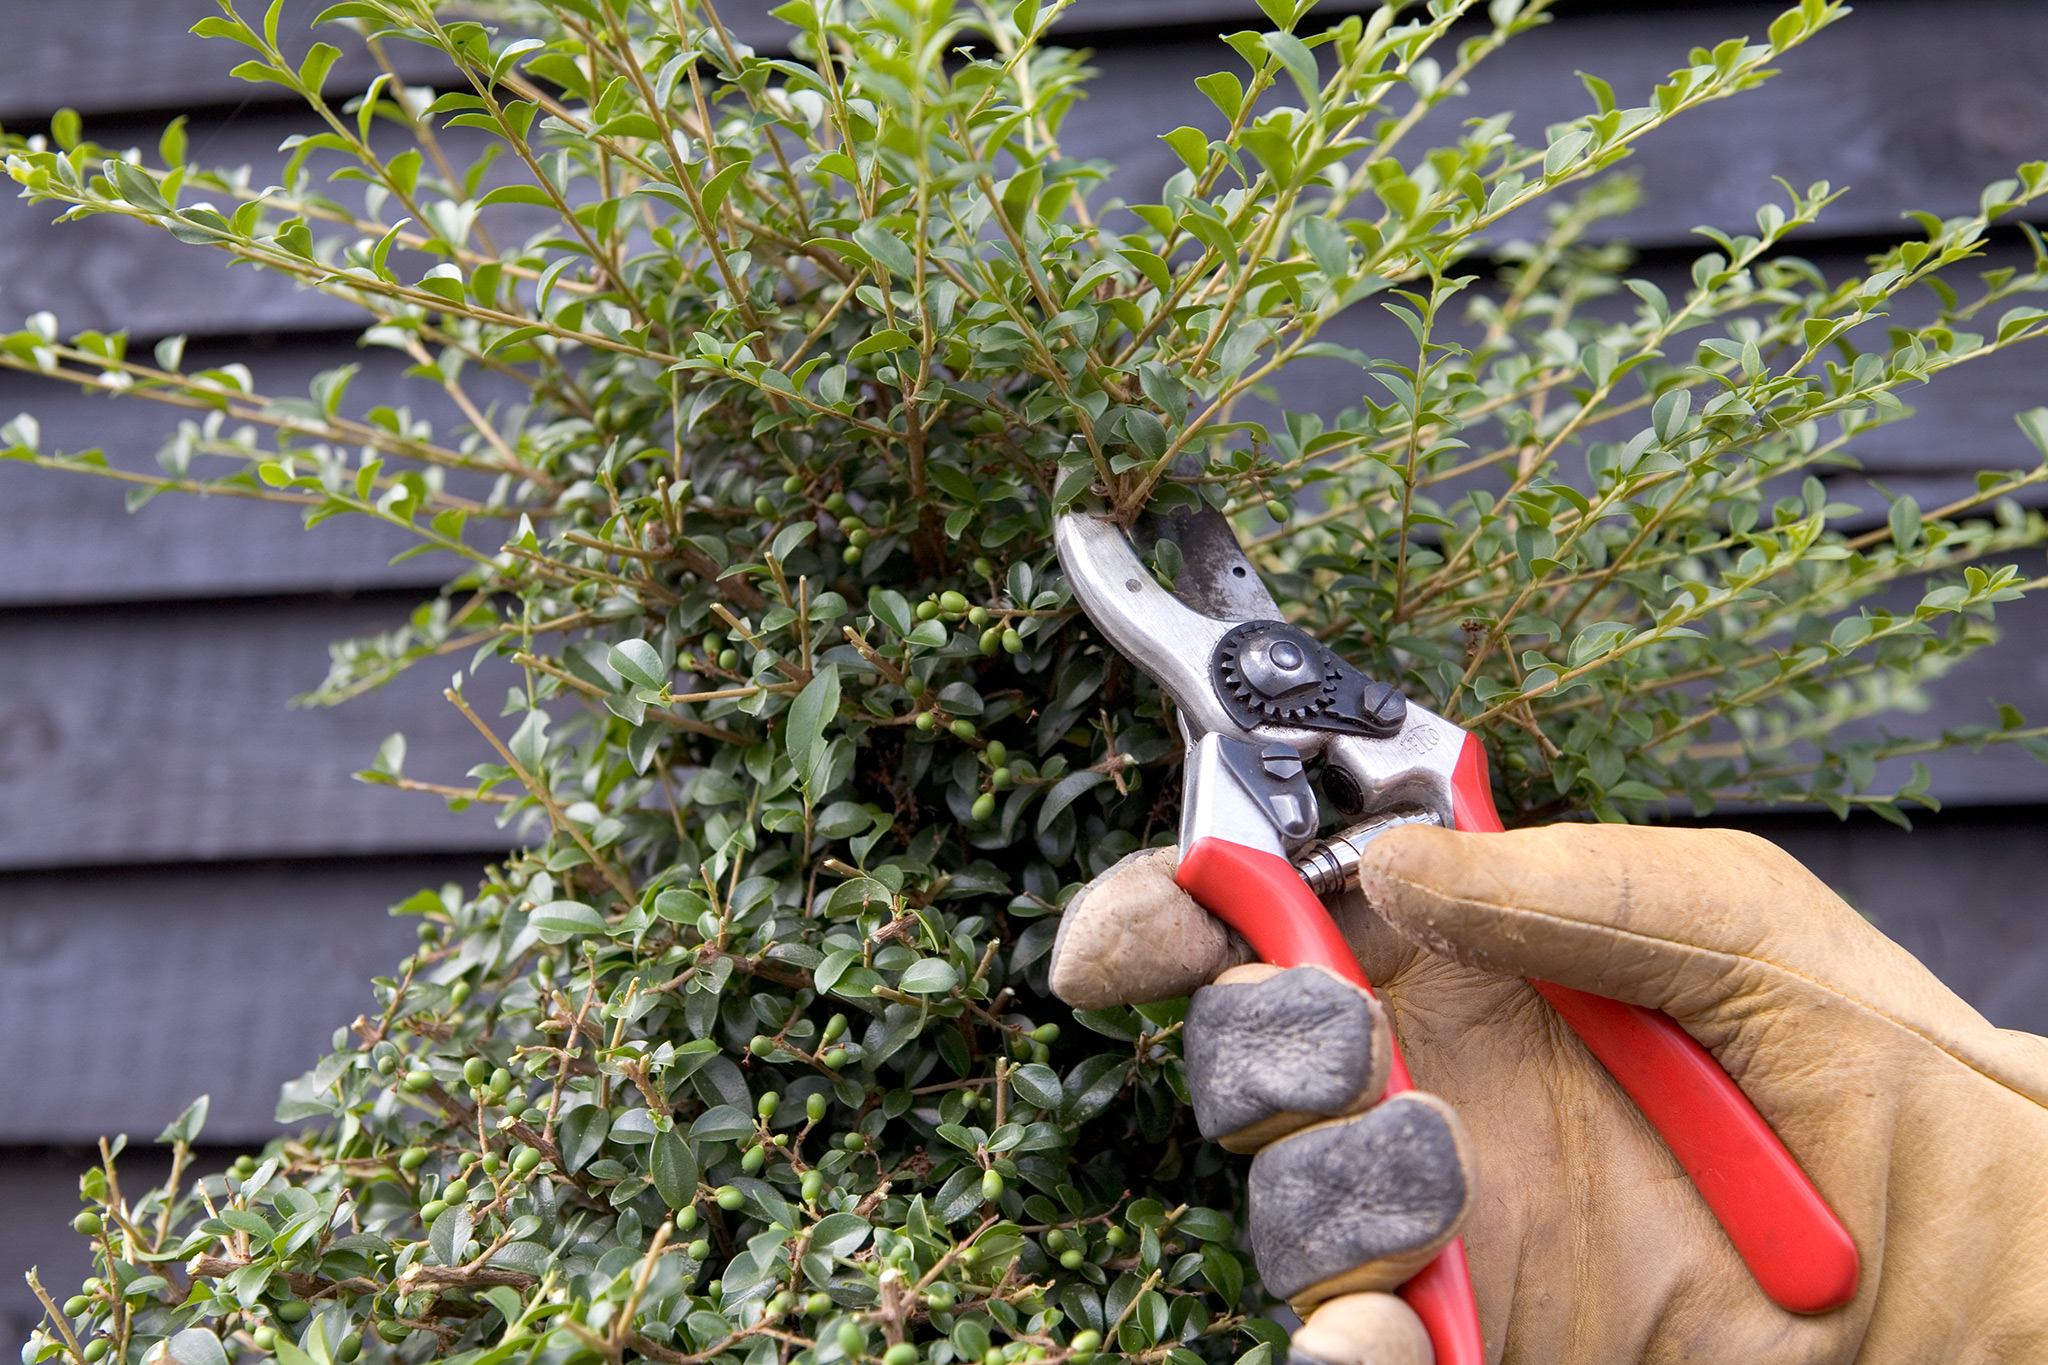 trimming-topiary-spiral-top-with-secateurs-2